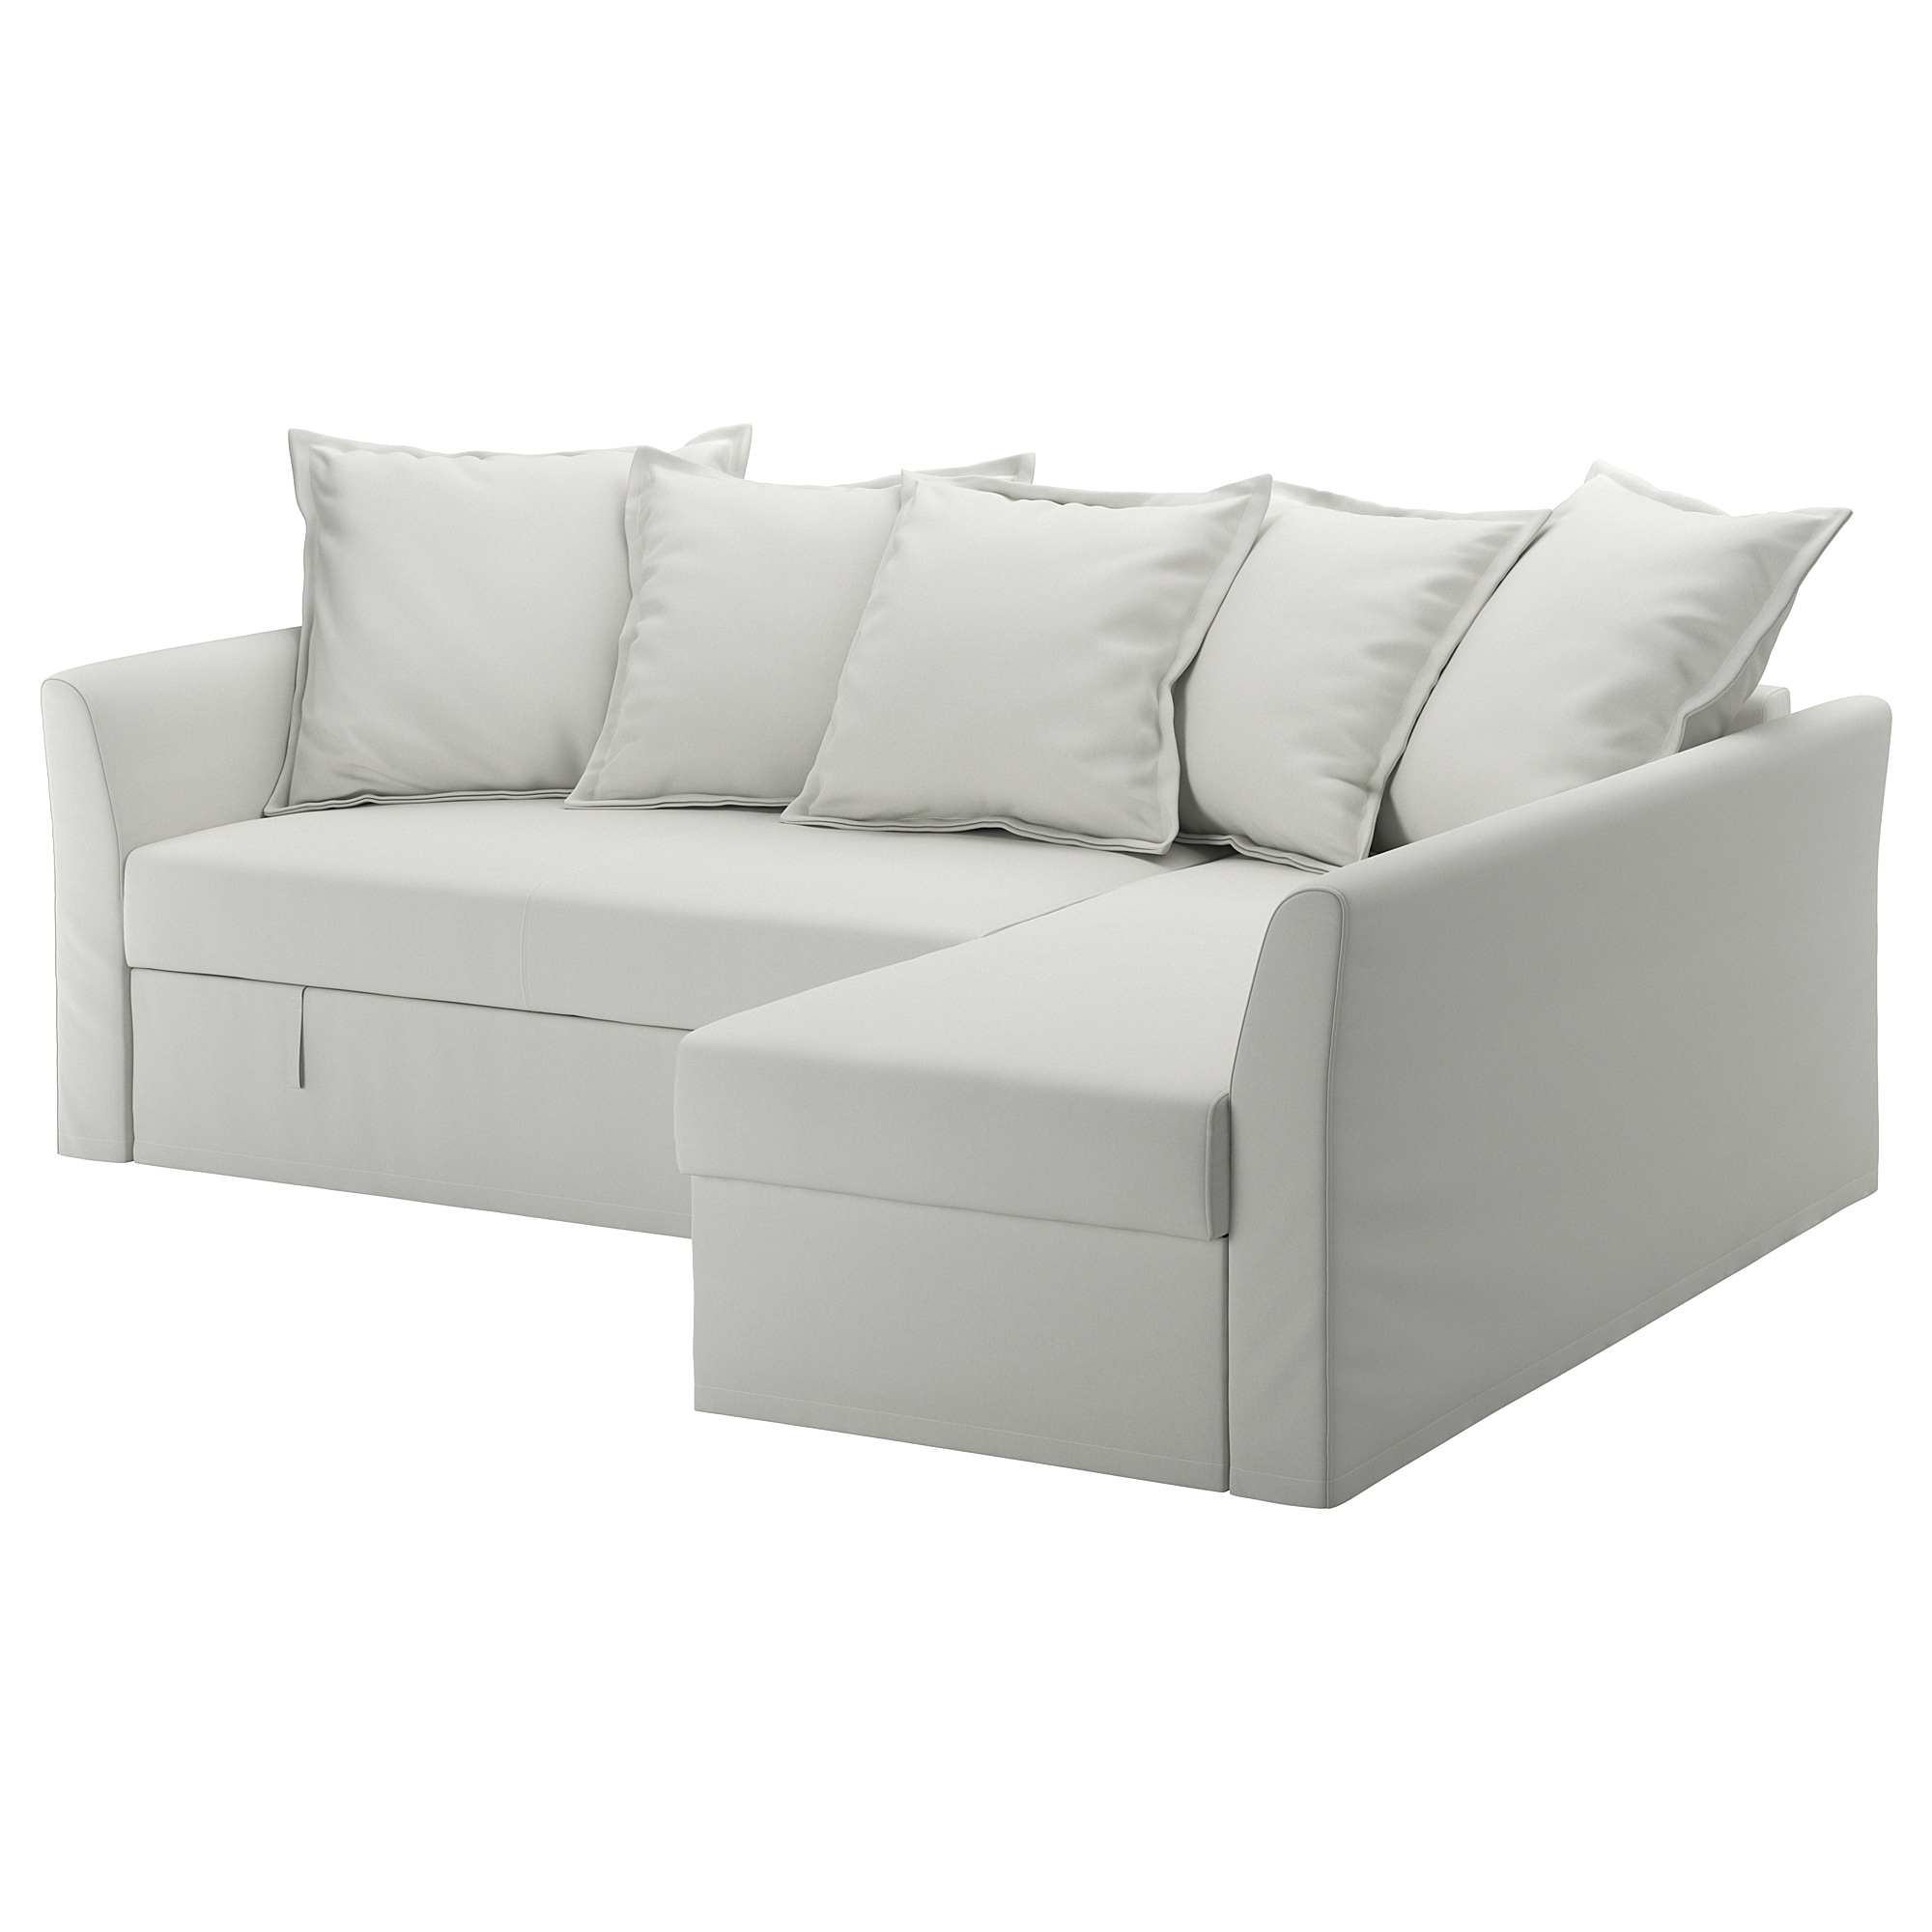 HOLMSUND Sleeper Sectional, 3 Seat, Orrsta Light White Gray Height  Including Back